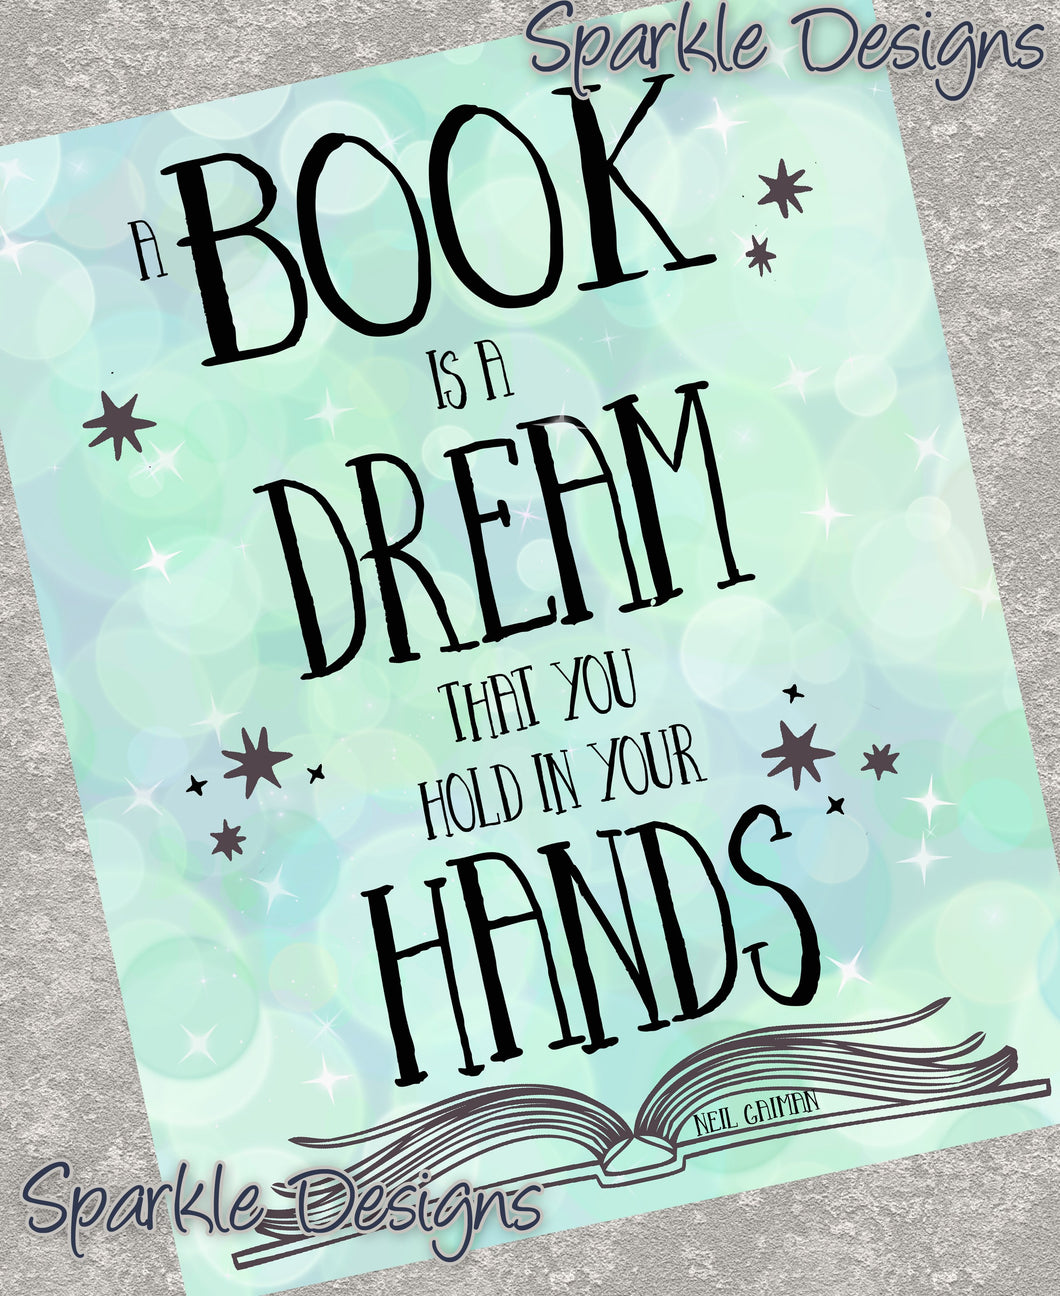 A book is a dream that you hold in your hands - Books 185 Art Print